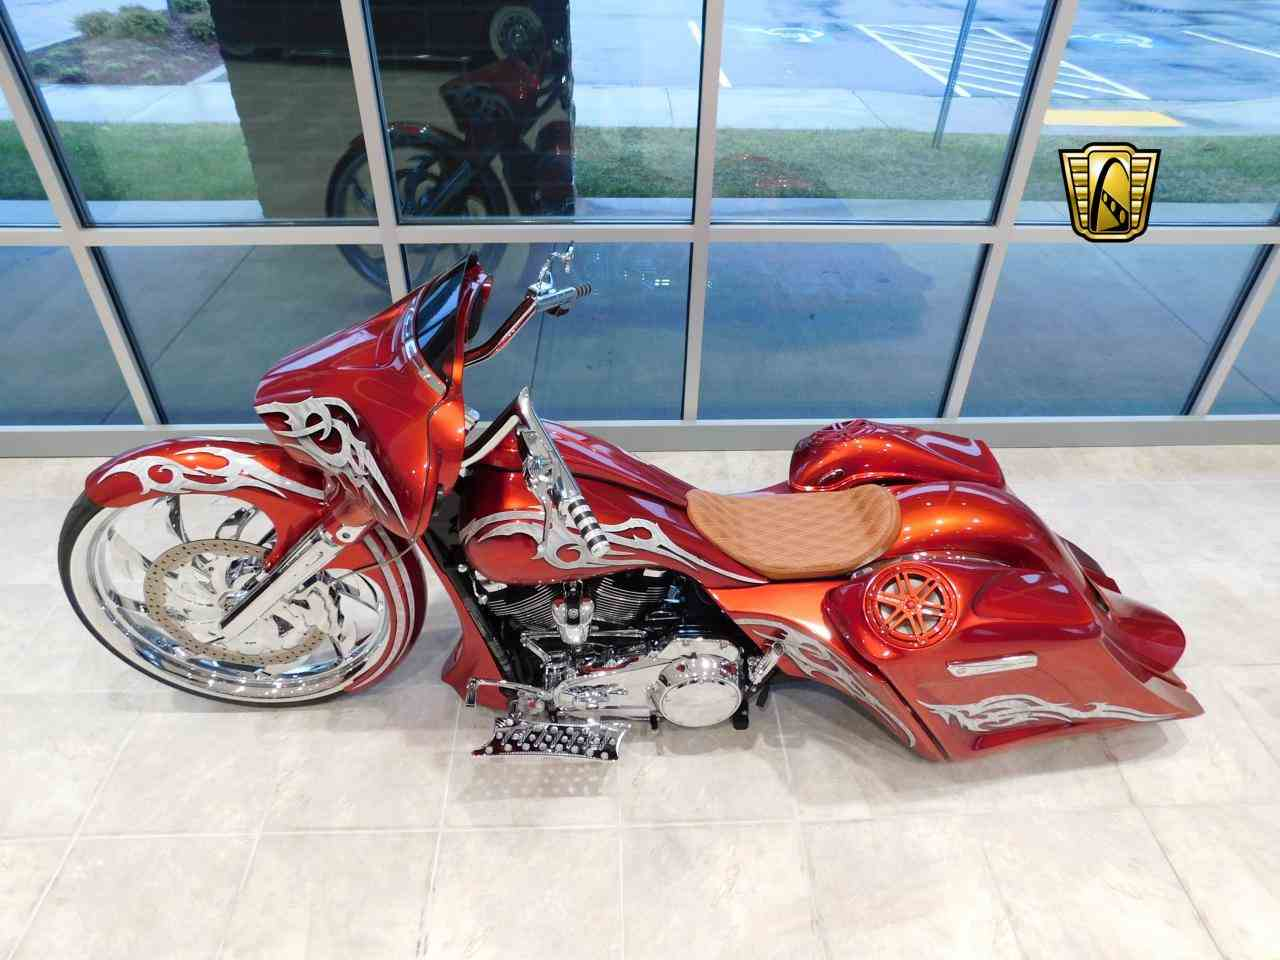 Large Picture of '17 Motorcycle - $98,000.00 - MOAJ